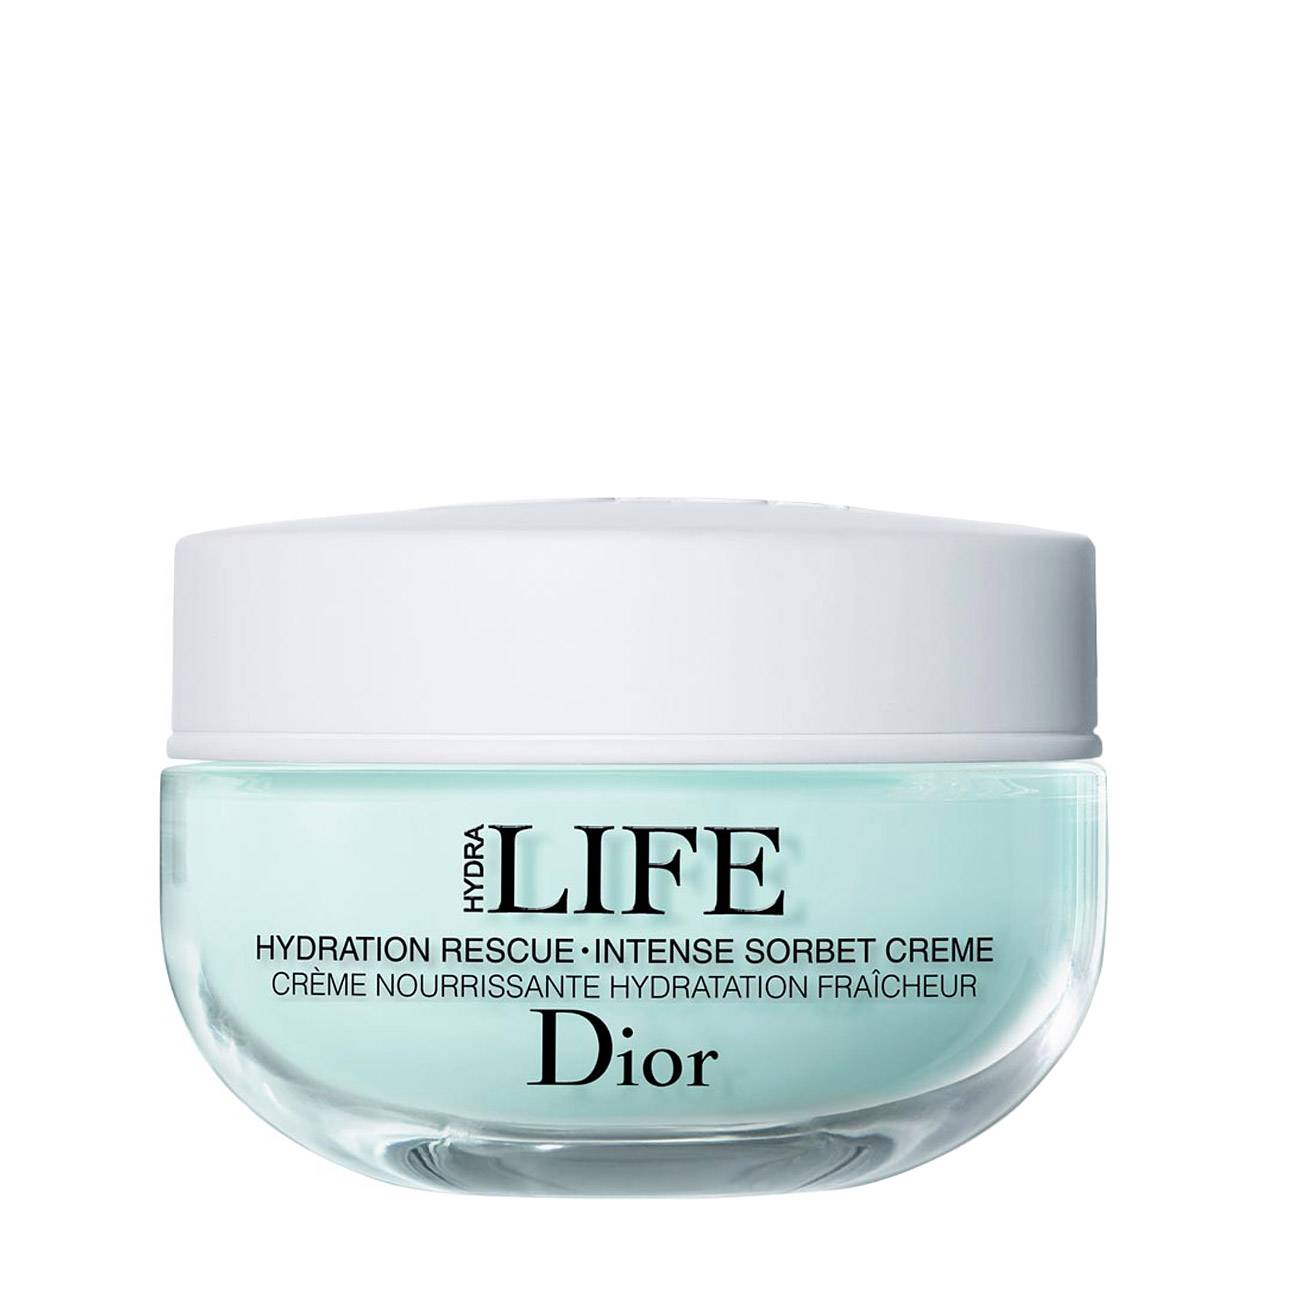 Hydra Life Intense Sorbet Rich Cream 50 Ml Dior imagine 2021 bestvalue.eu